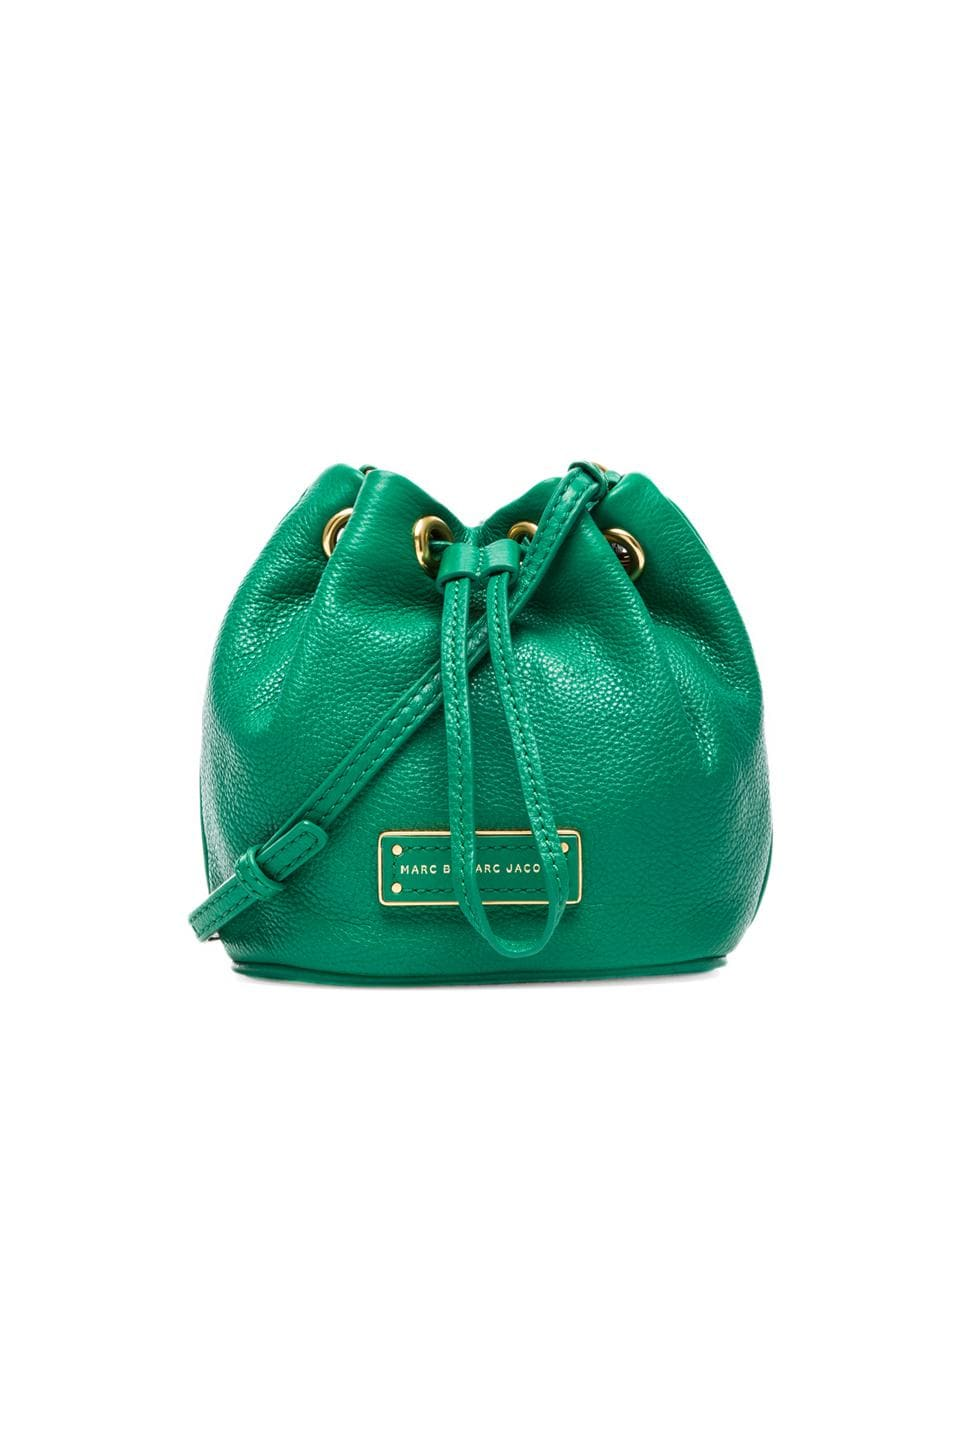 Marc by Marc Jacobs Too Hot To Handle Mini Drawstring Bag in Soccer Pitch Green